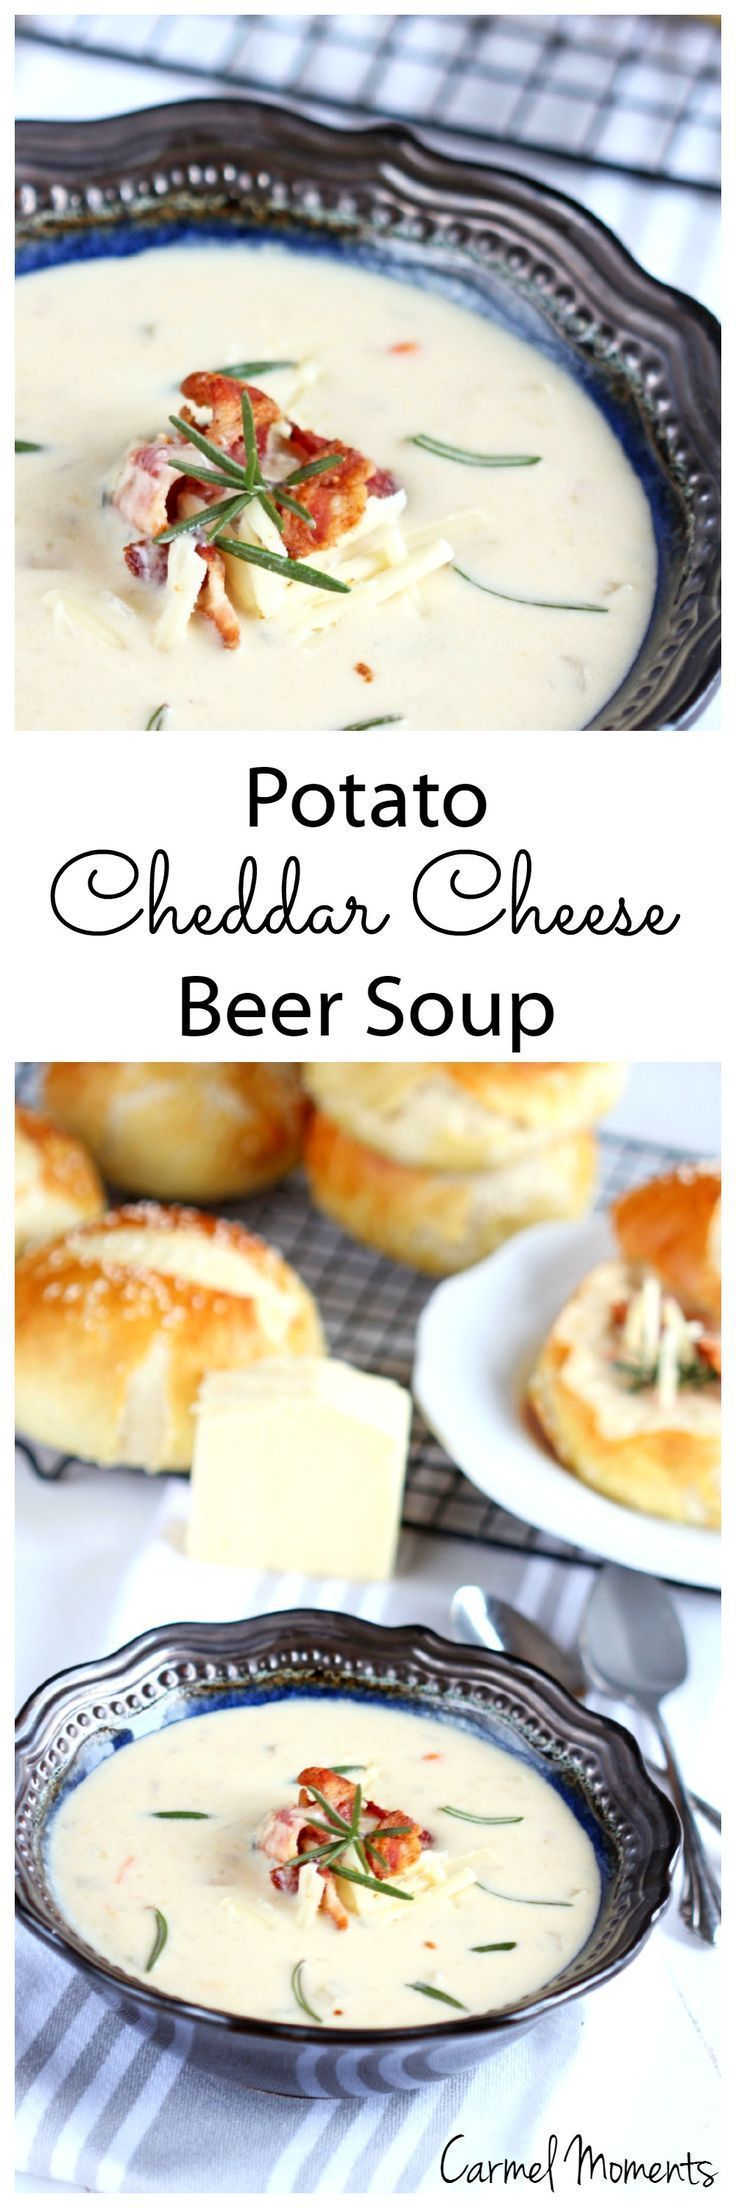 Delicious creamy soup boasting flavor from beer, potatoes and cheddar cheese.